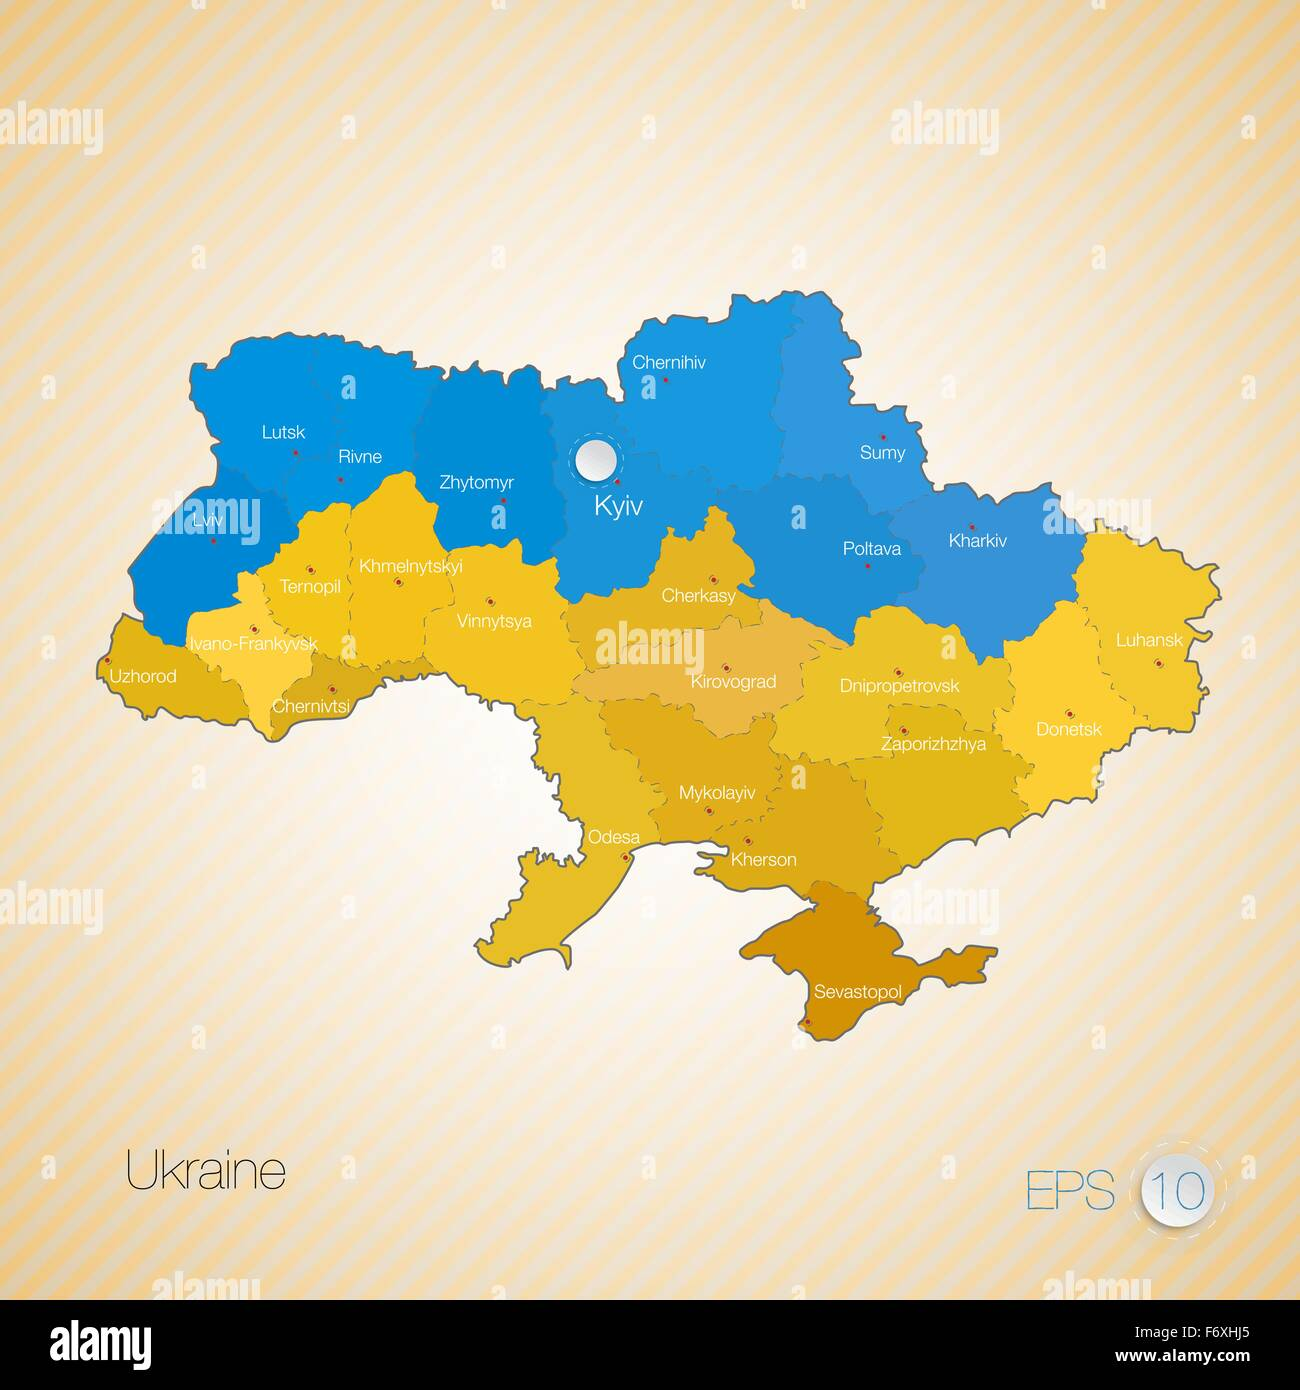 Map and flag of Ukraine with divisions. Vector illustration. - Stock Image